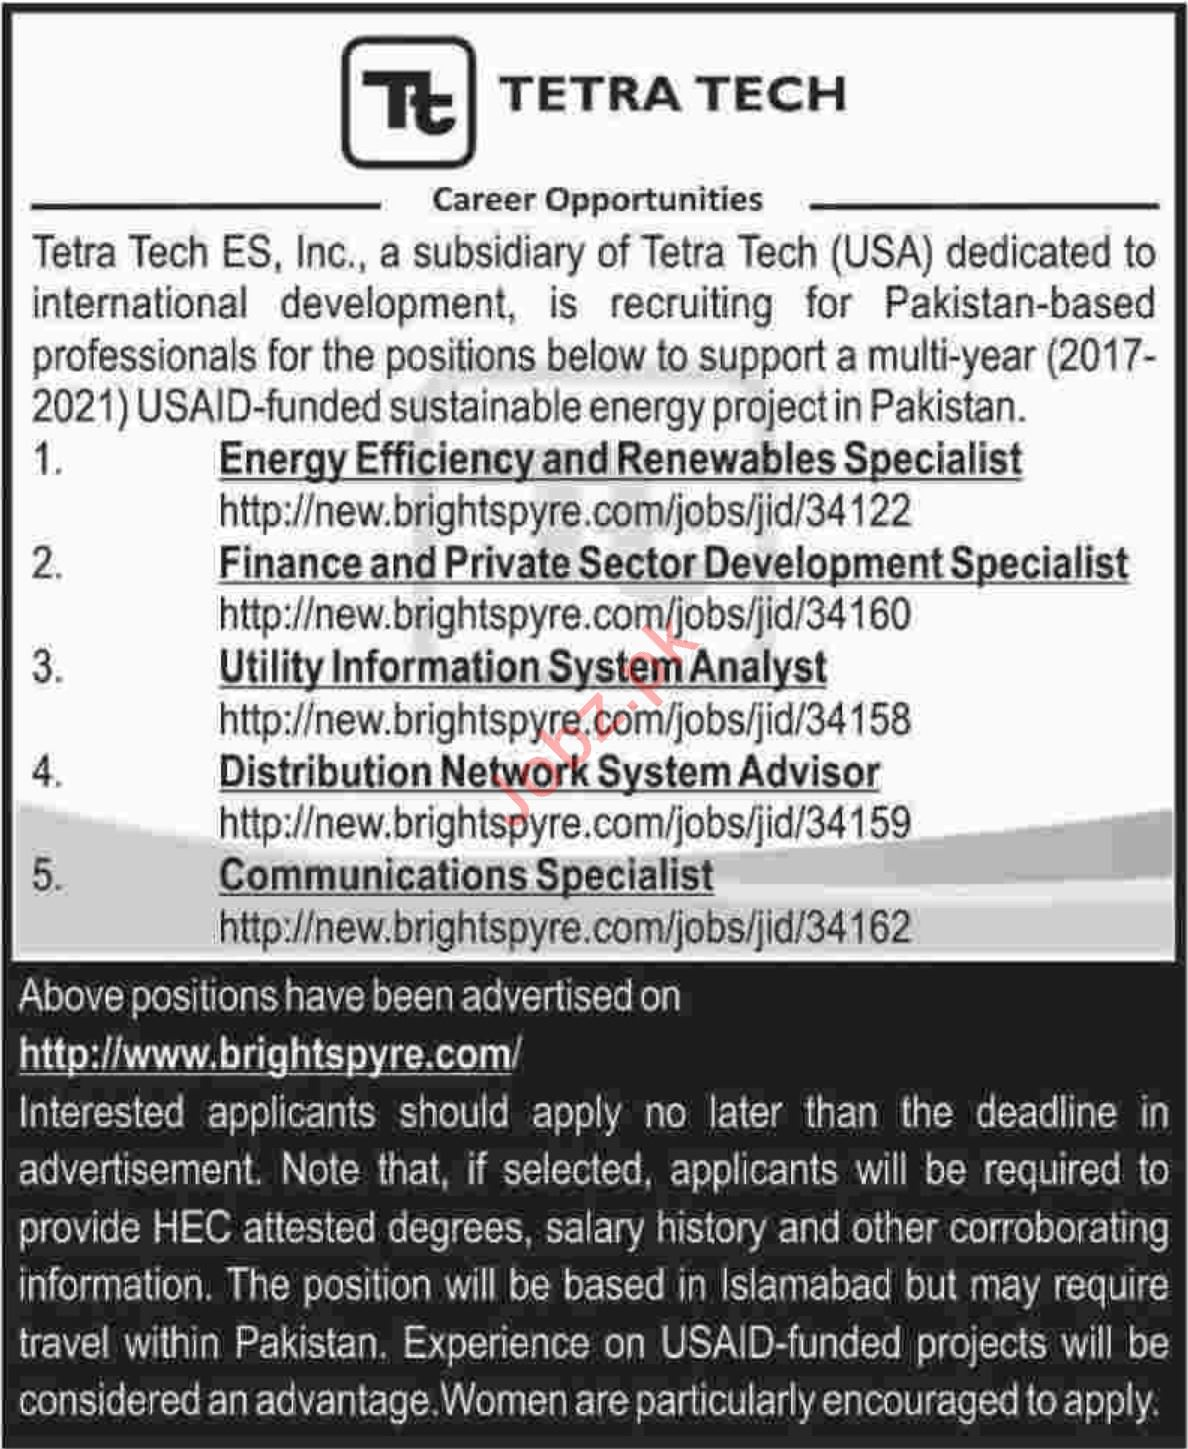 Energy Efficiency & Renewable Specialist Jobs at Tetra Tech